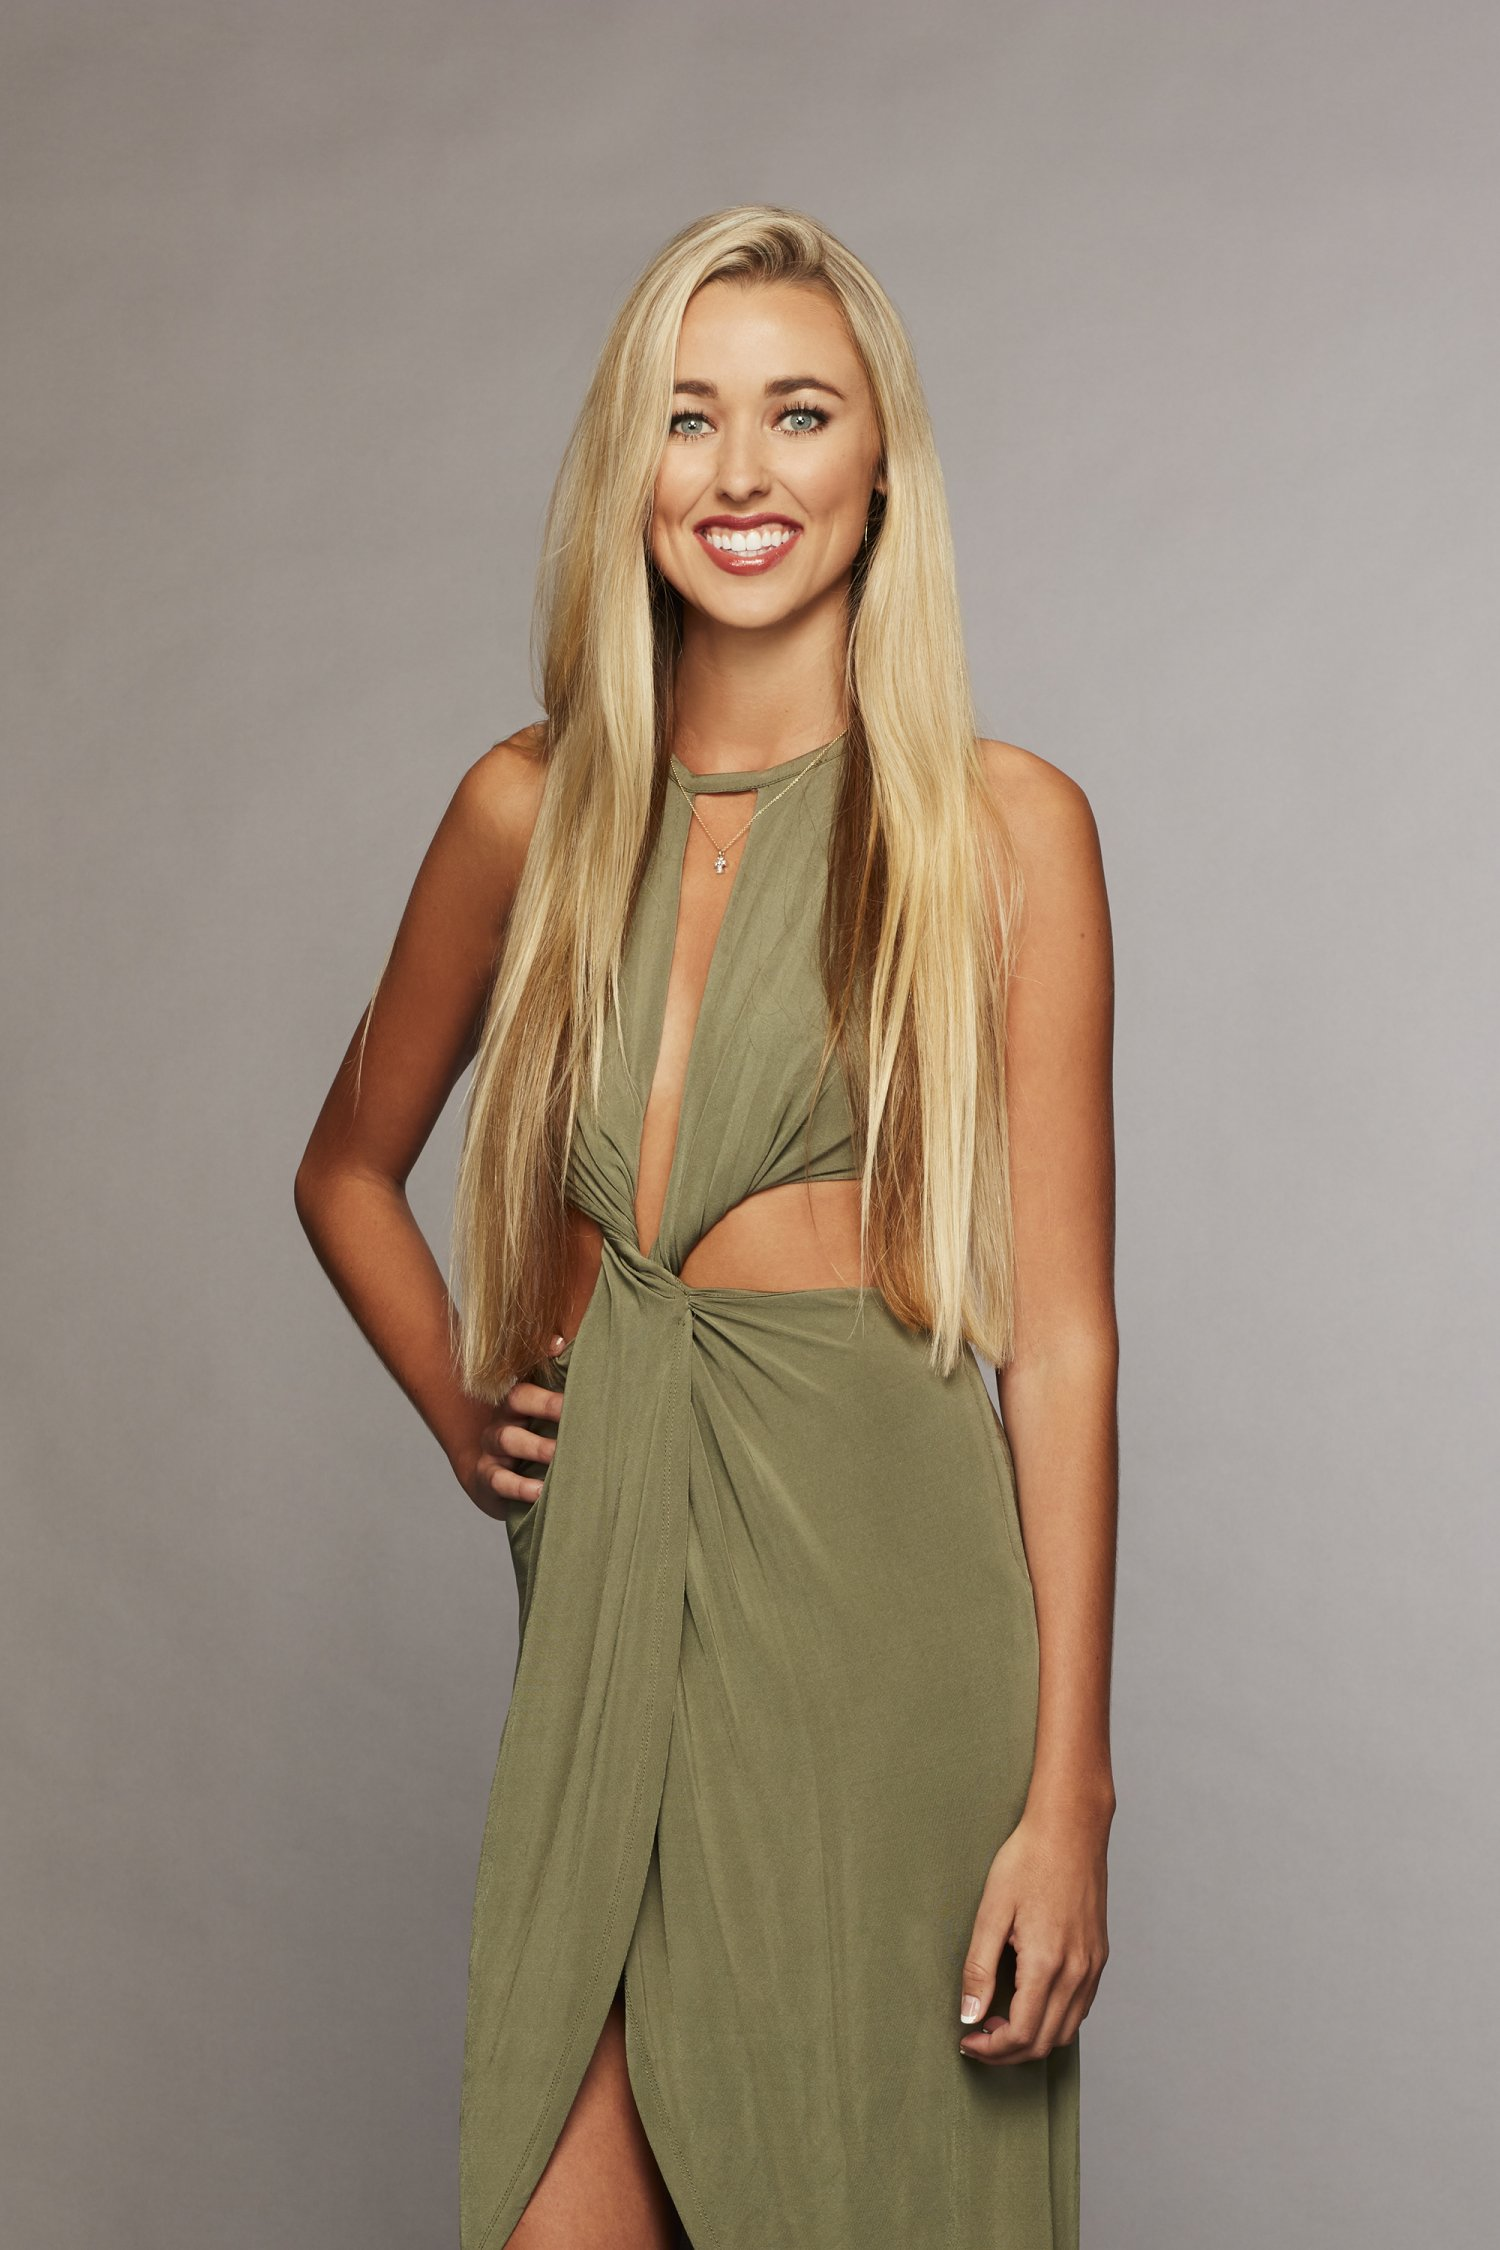 Bachelor 23 - Heather Martin - *Sleuthing Spoilers *  - Page 2 4844-o